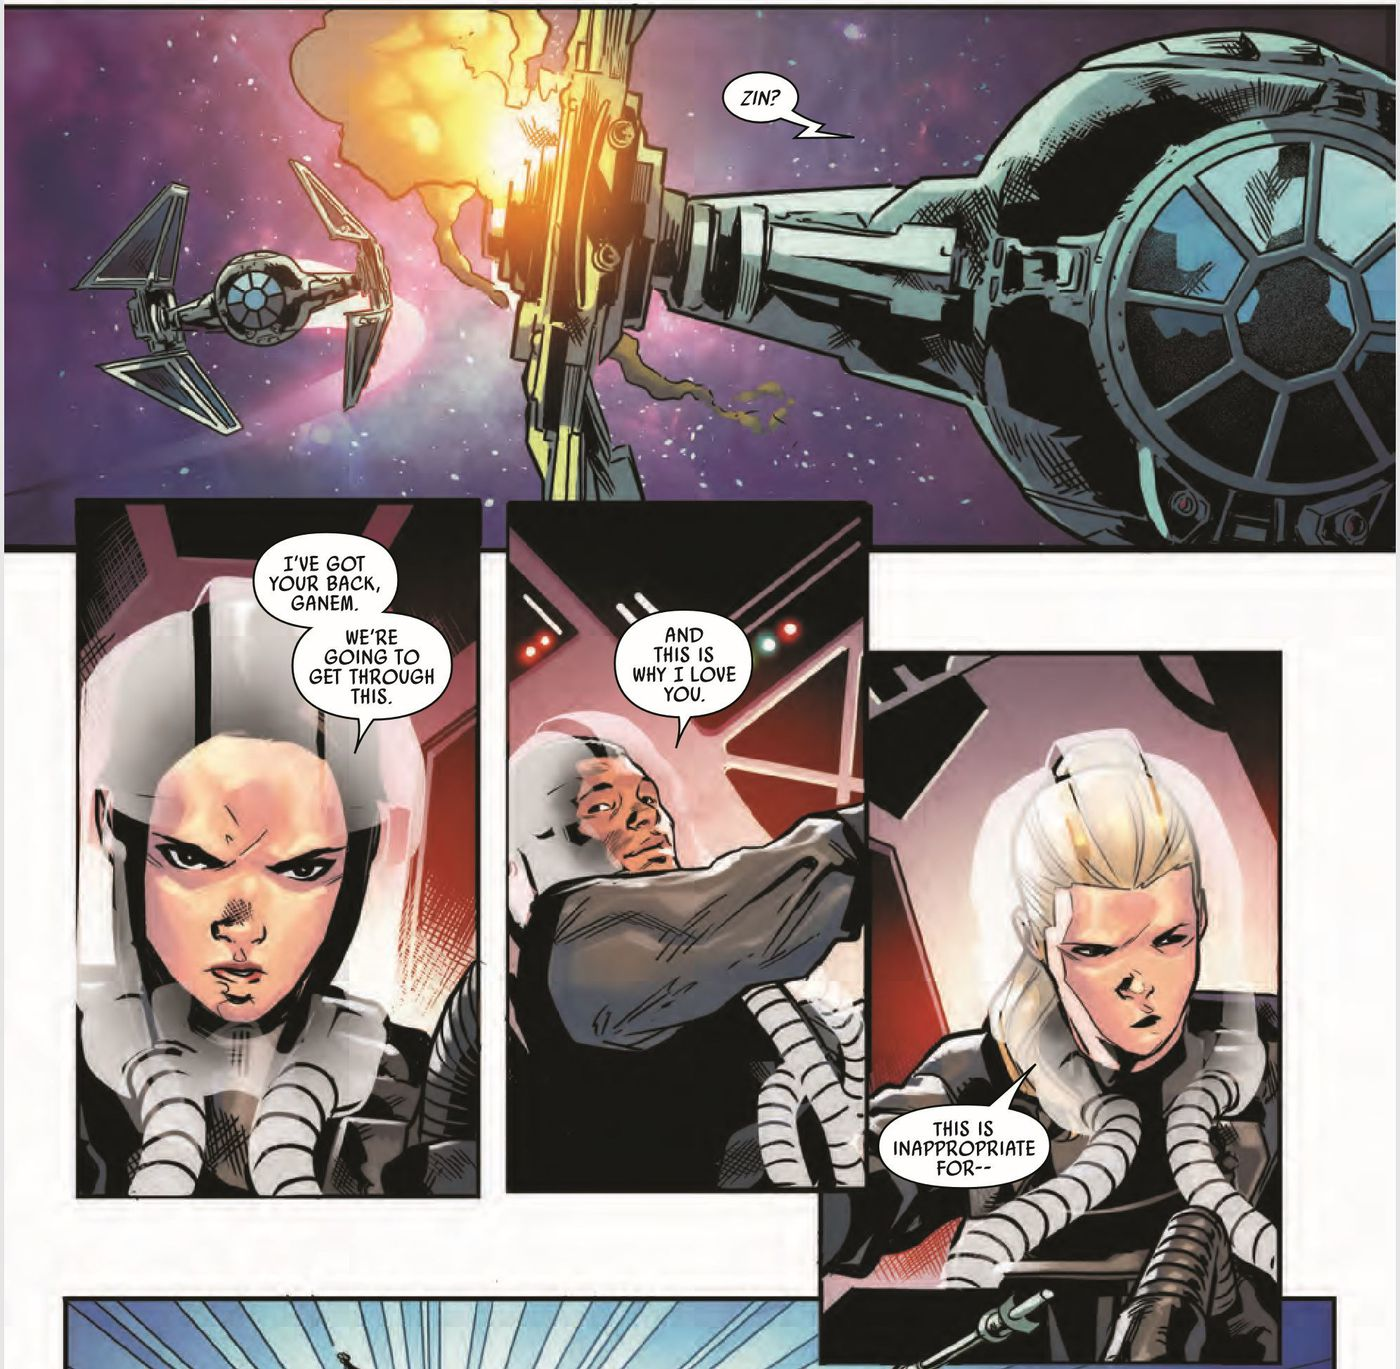 Marvel's Star Wars: TIE Fighter comics are unflinching portrayals ...